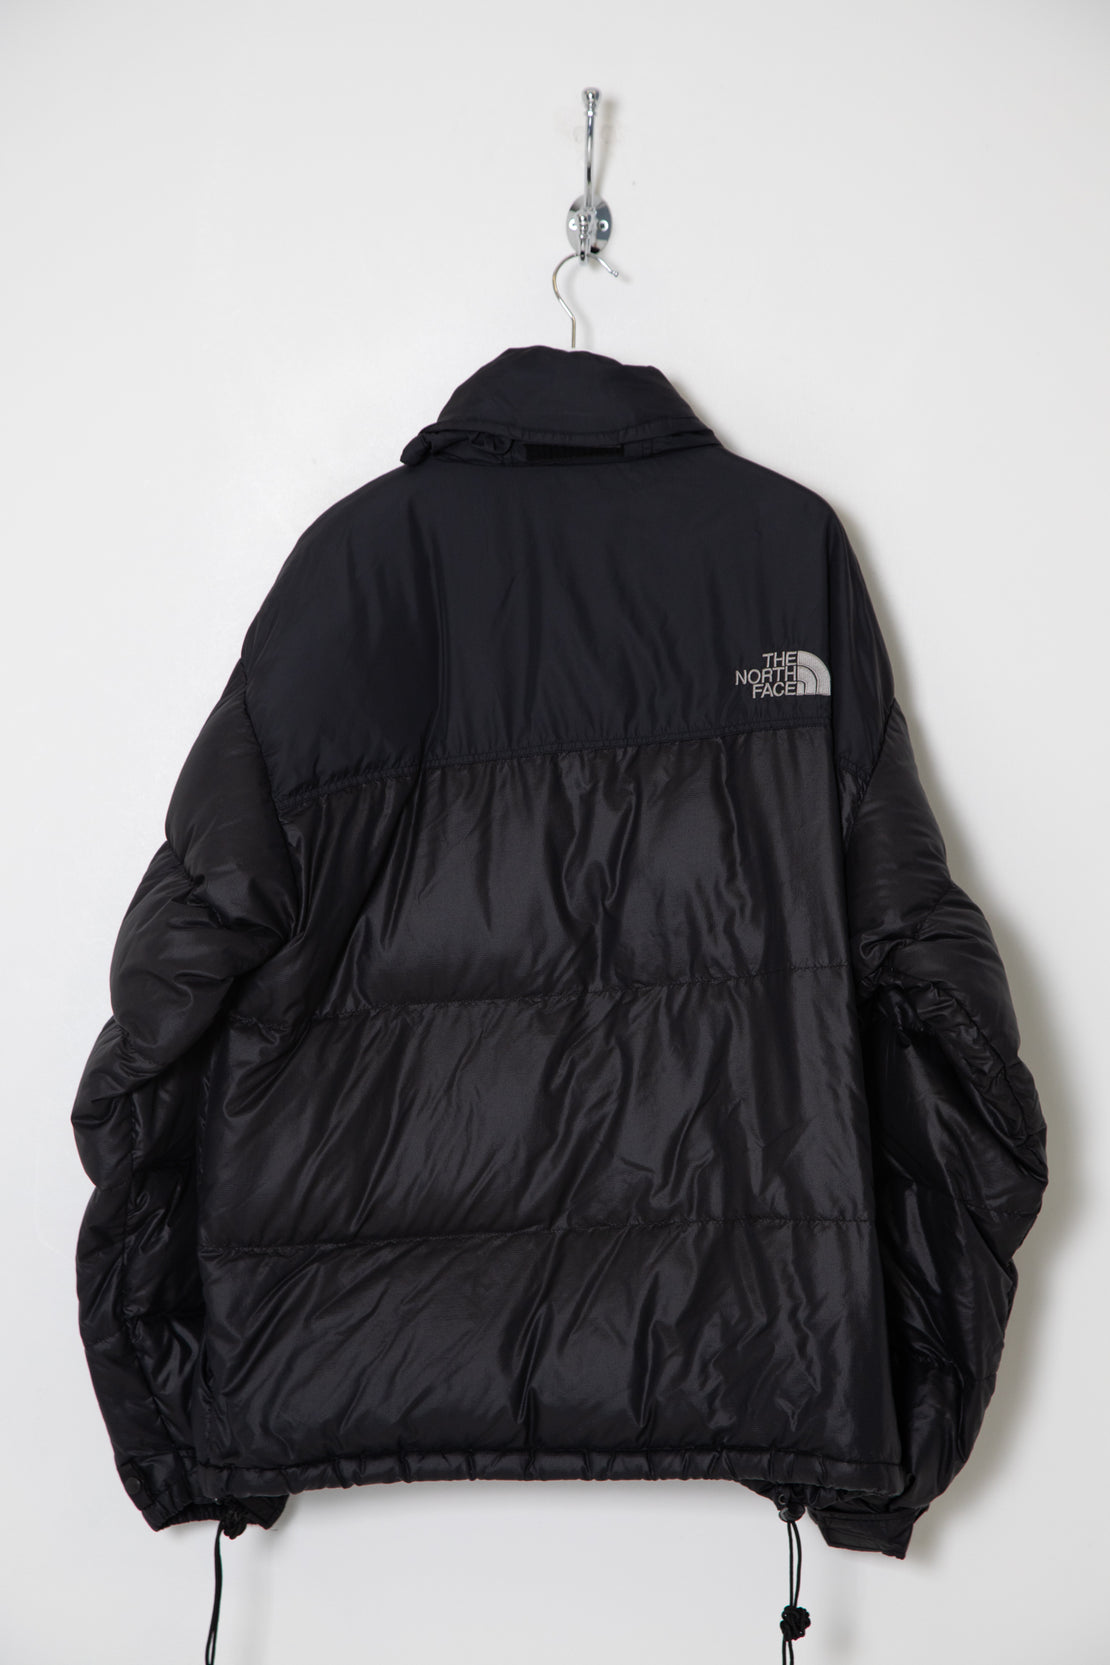 The North Face 700 Nuptse Puffer Jacket (XL)